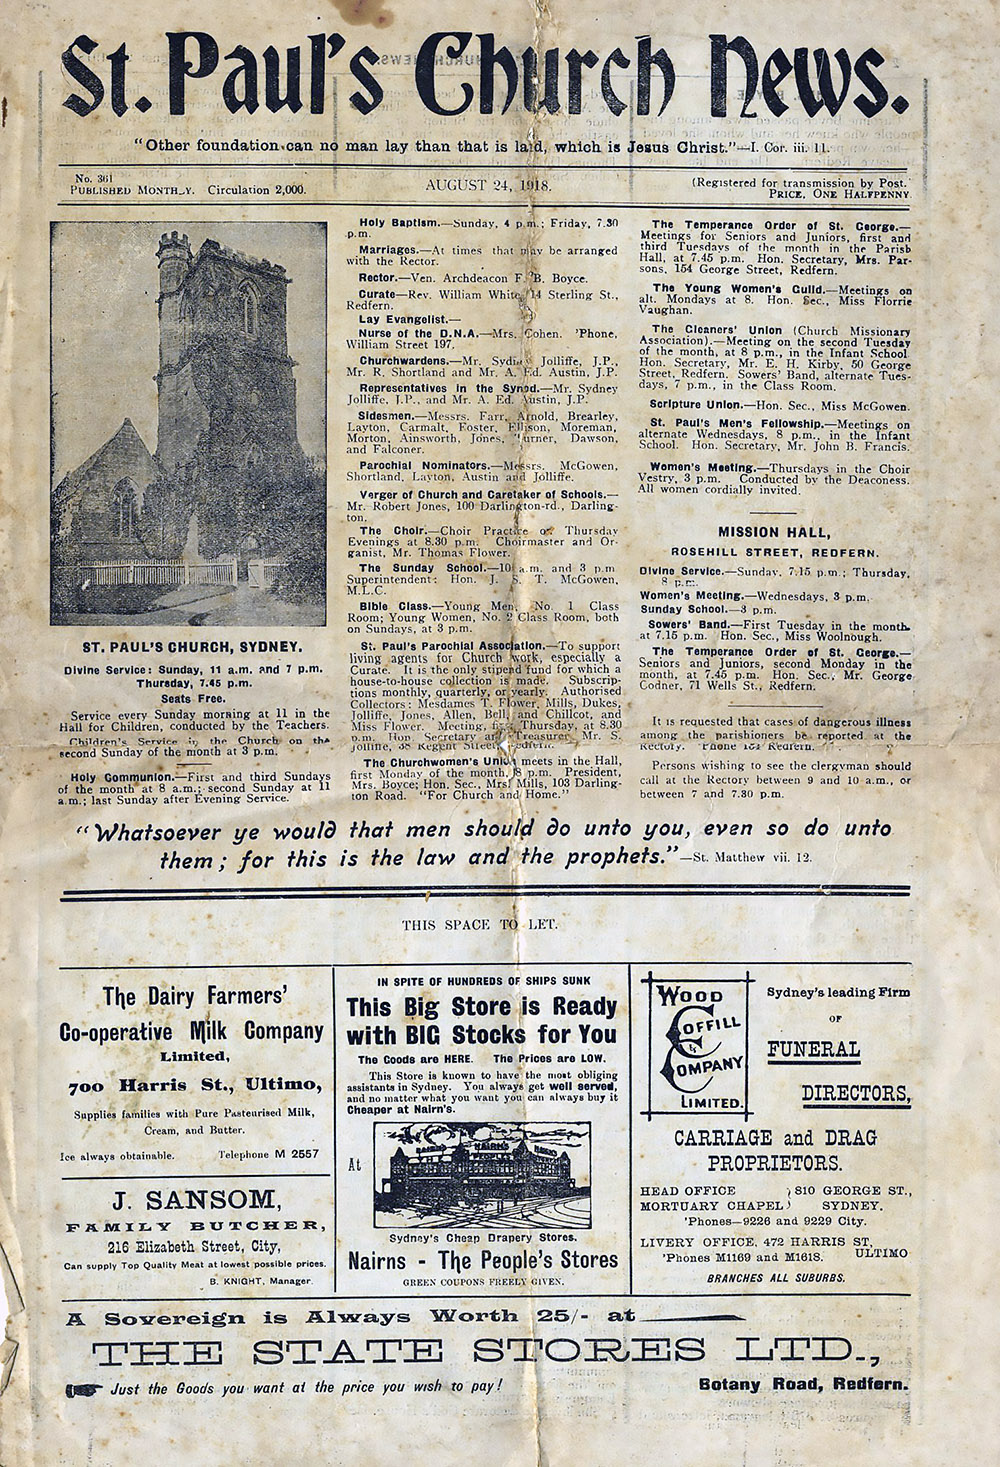 ST. Pauls Church News August 24, 1918